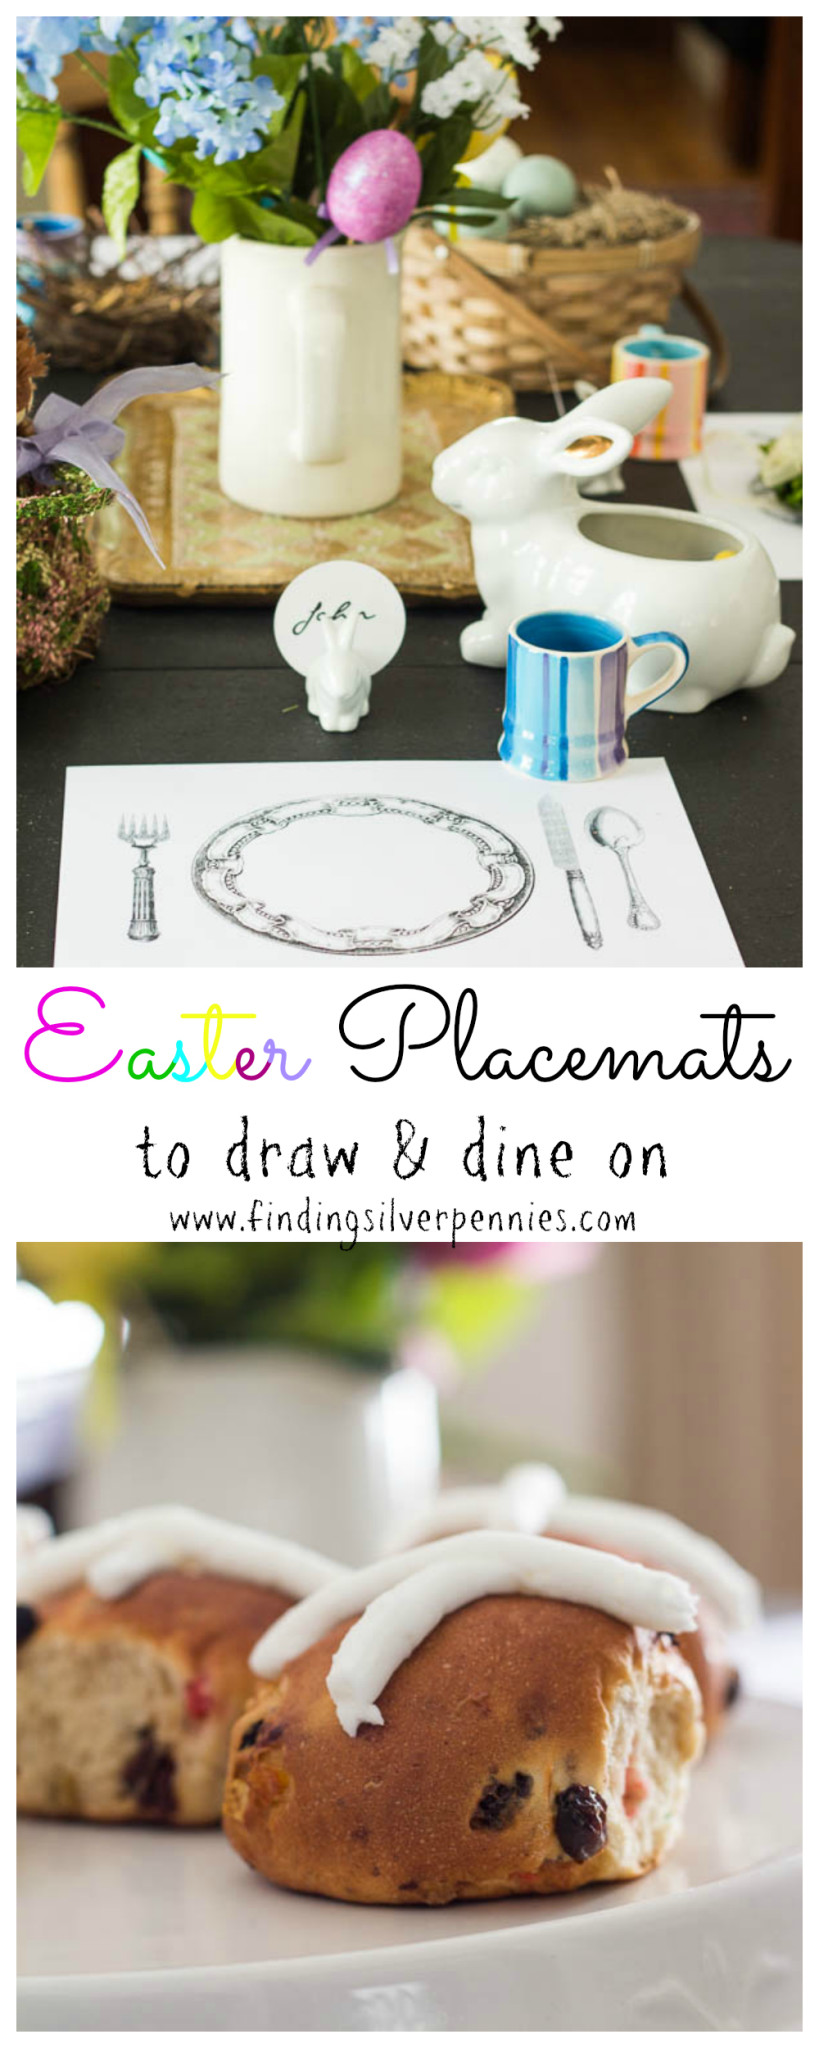 Easter Placemat Free Printable by Finding Silver Pennies